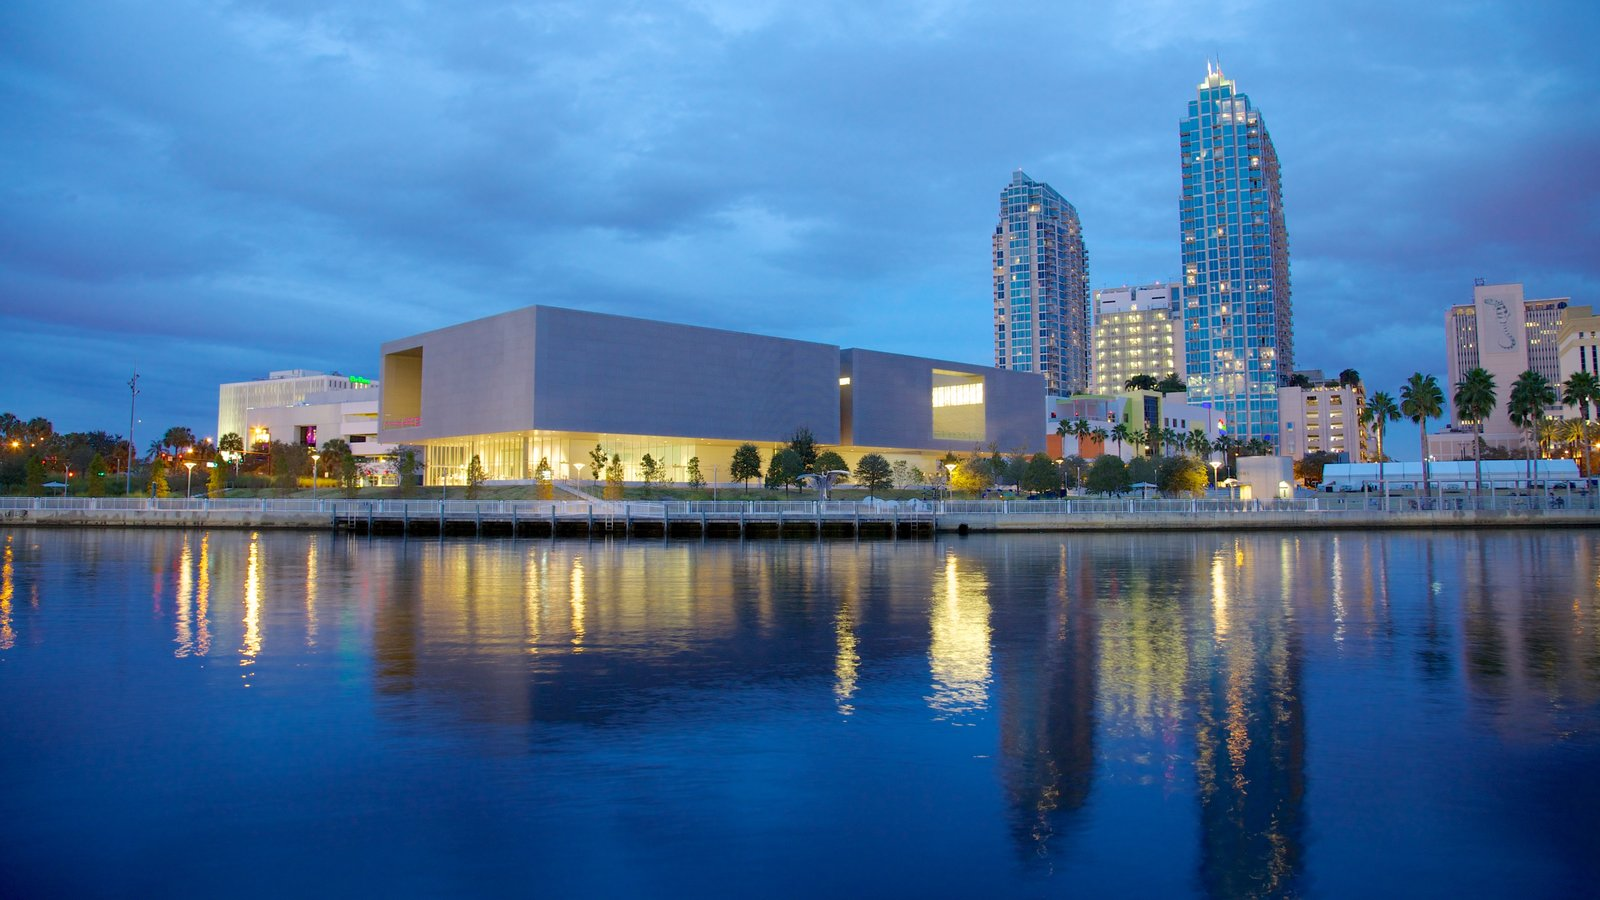 Tampa Museum of Art featuring a city, a high rise building and modern architecture